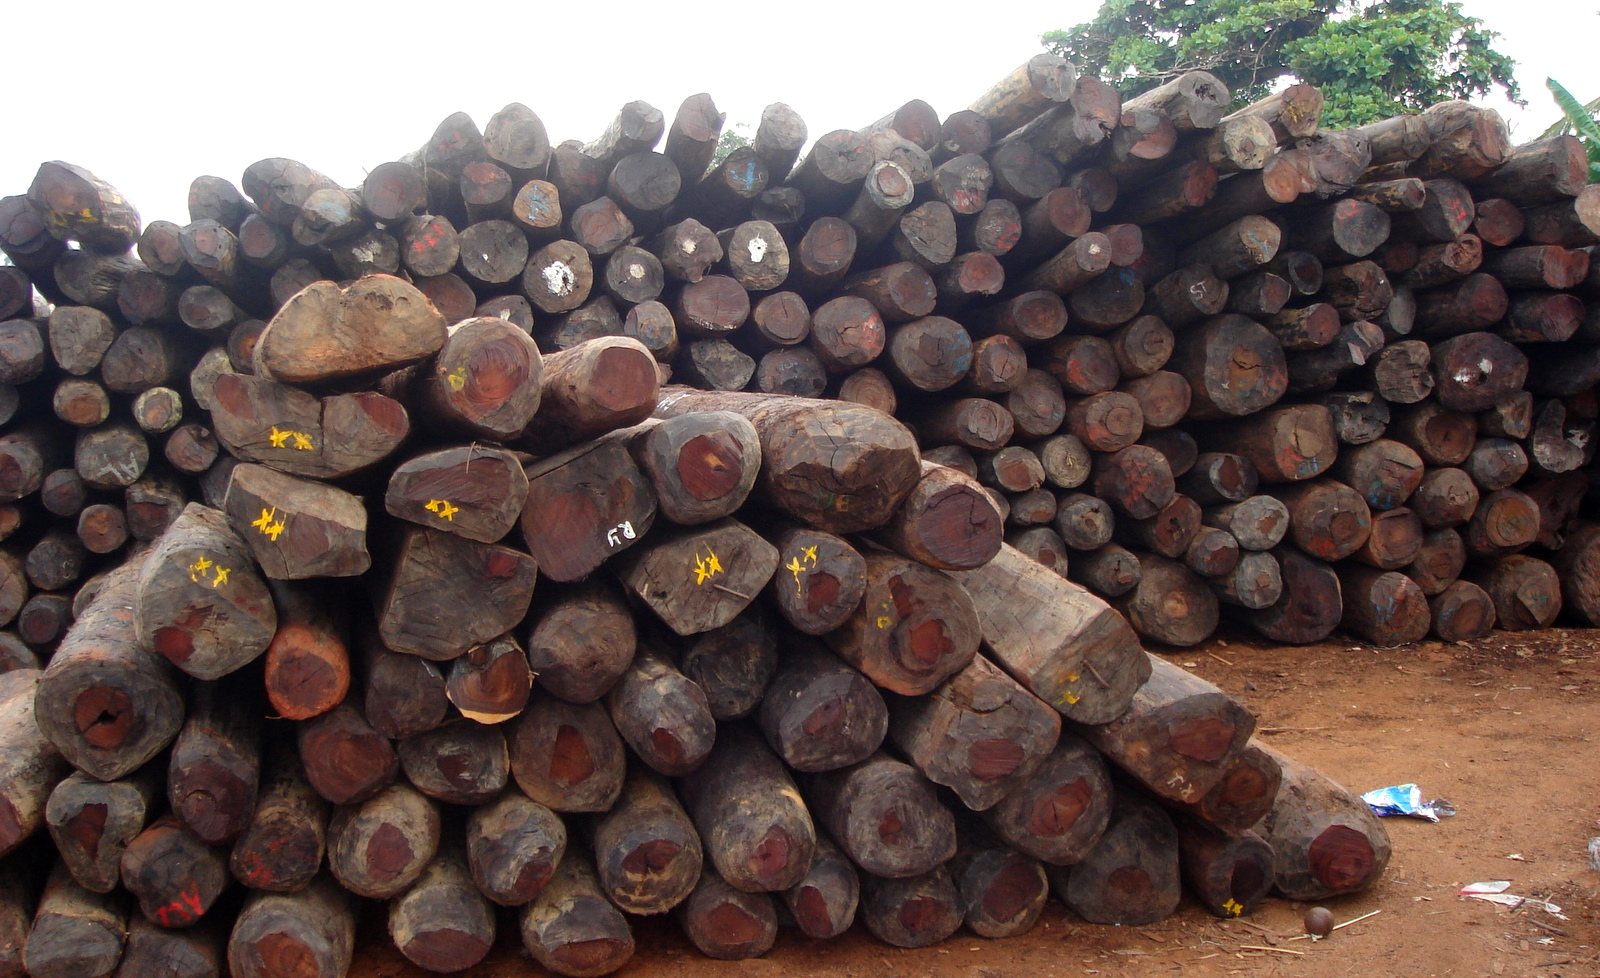 MORE LUCRATIVE THAN COCCAINE - THE ROSEWOOD TRADE